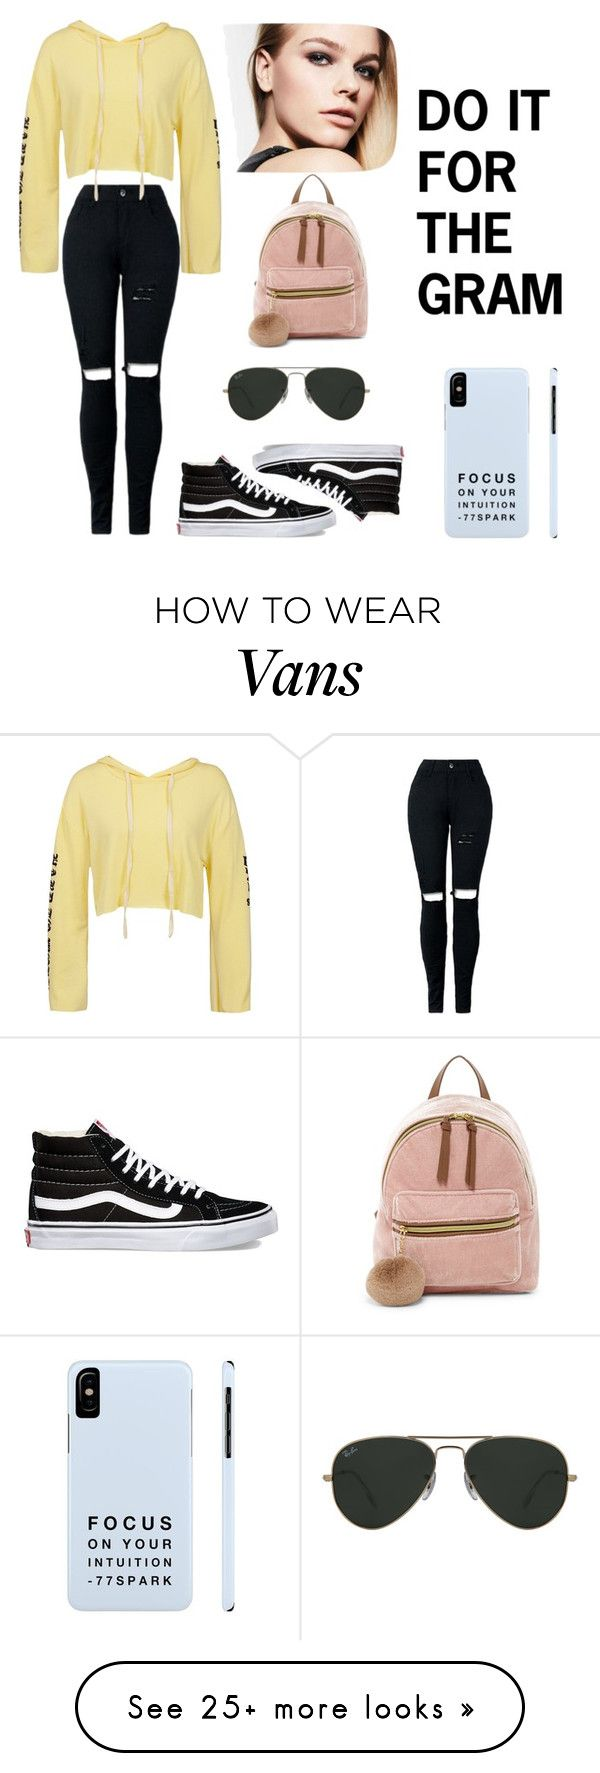 """""""do it for the gram kinda fit"""" by nadyazzahra on Polyvore featuring Sans Souci, Vans, Ray-Ban and T-shirt & Jeans"""